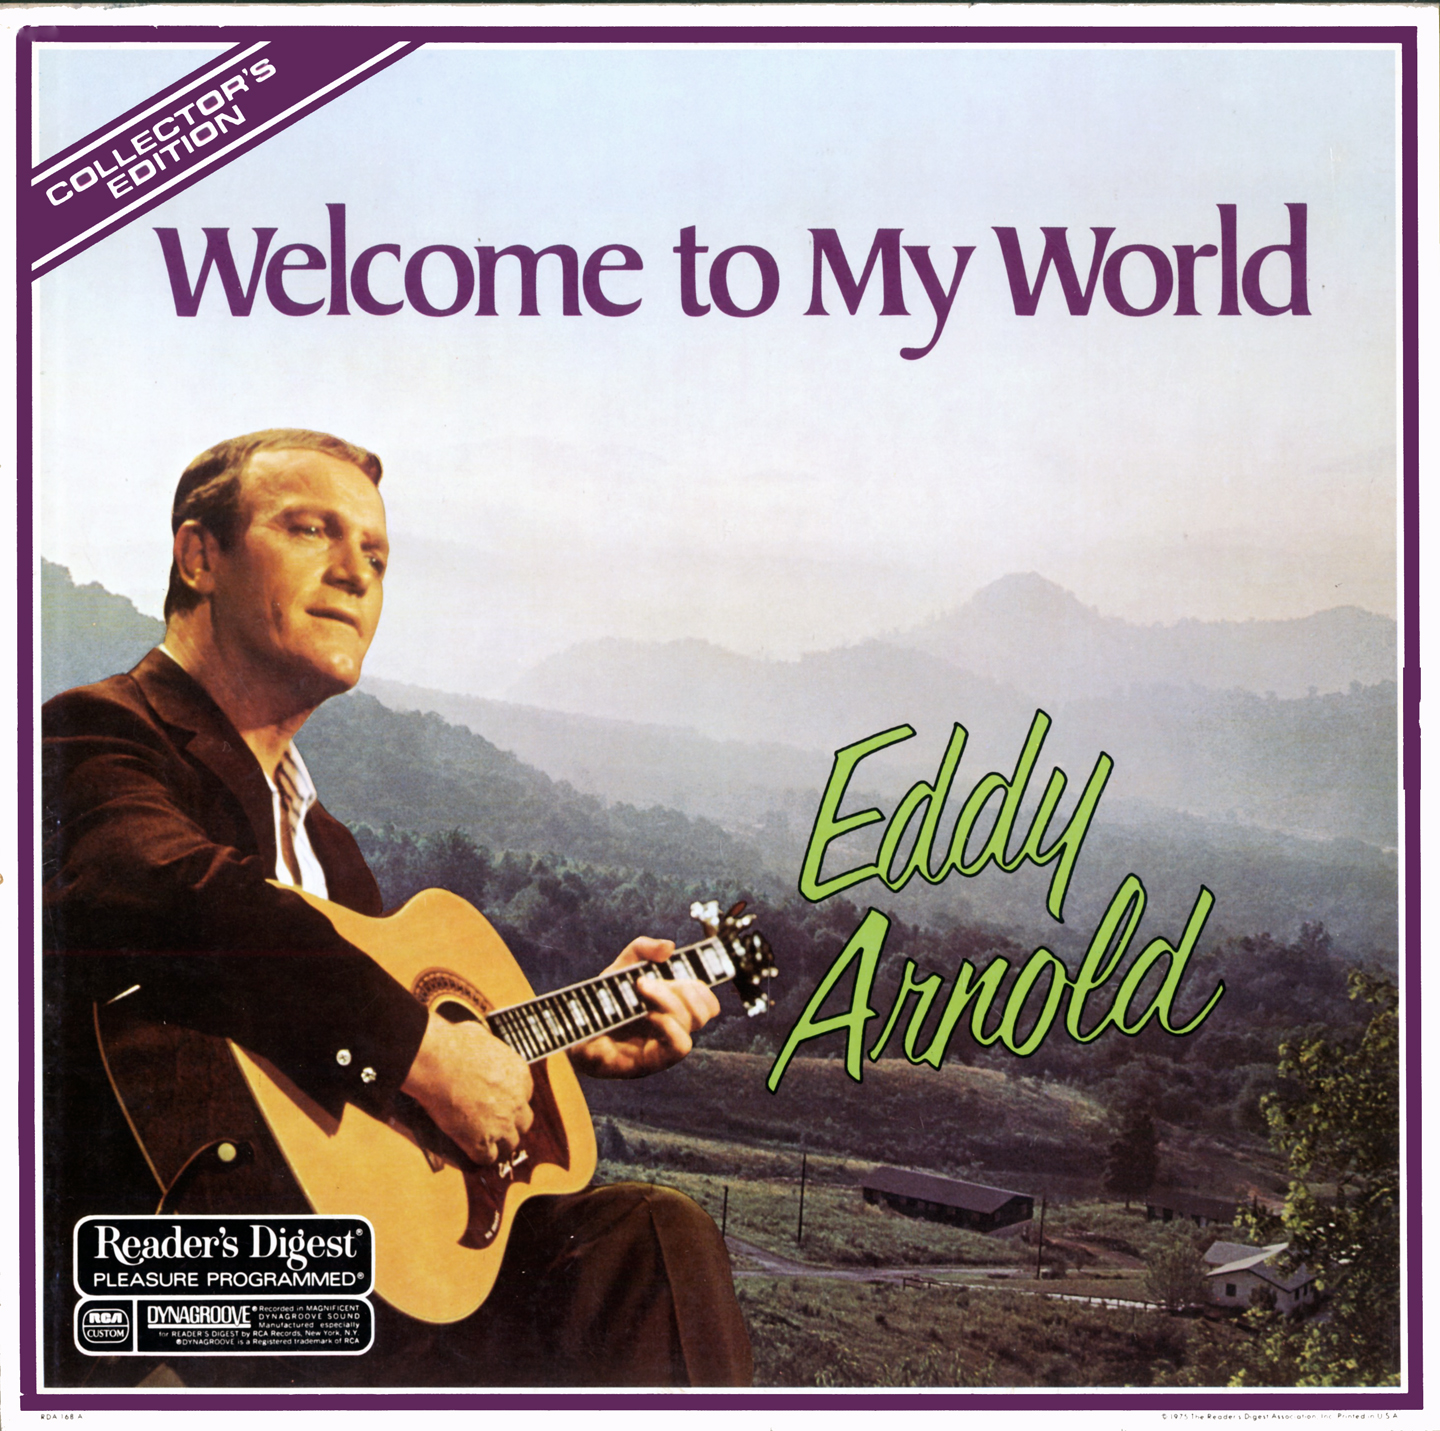 RDA168 - Arnold, Eddy - Welcome To My World on CD